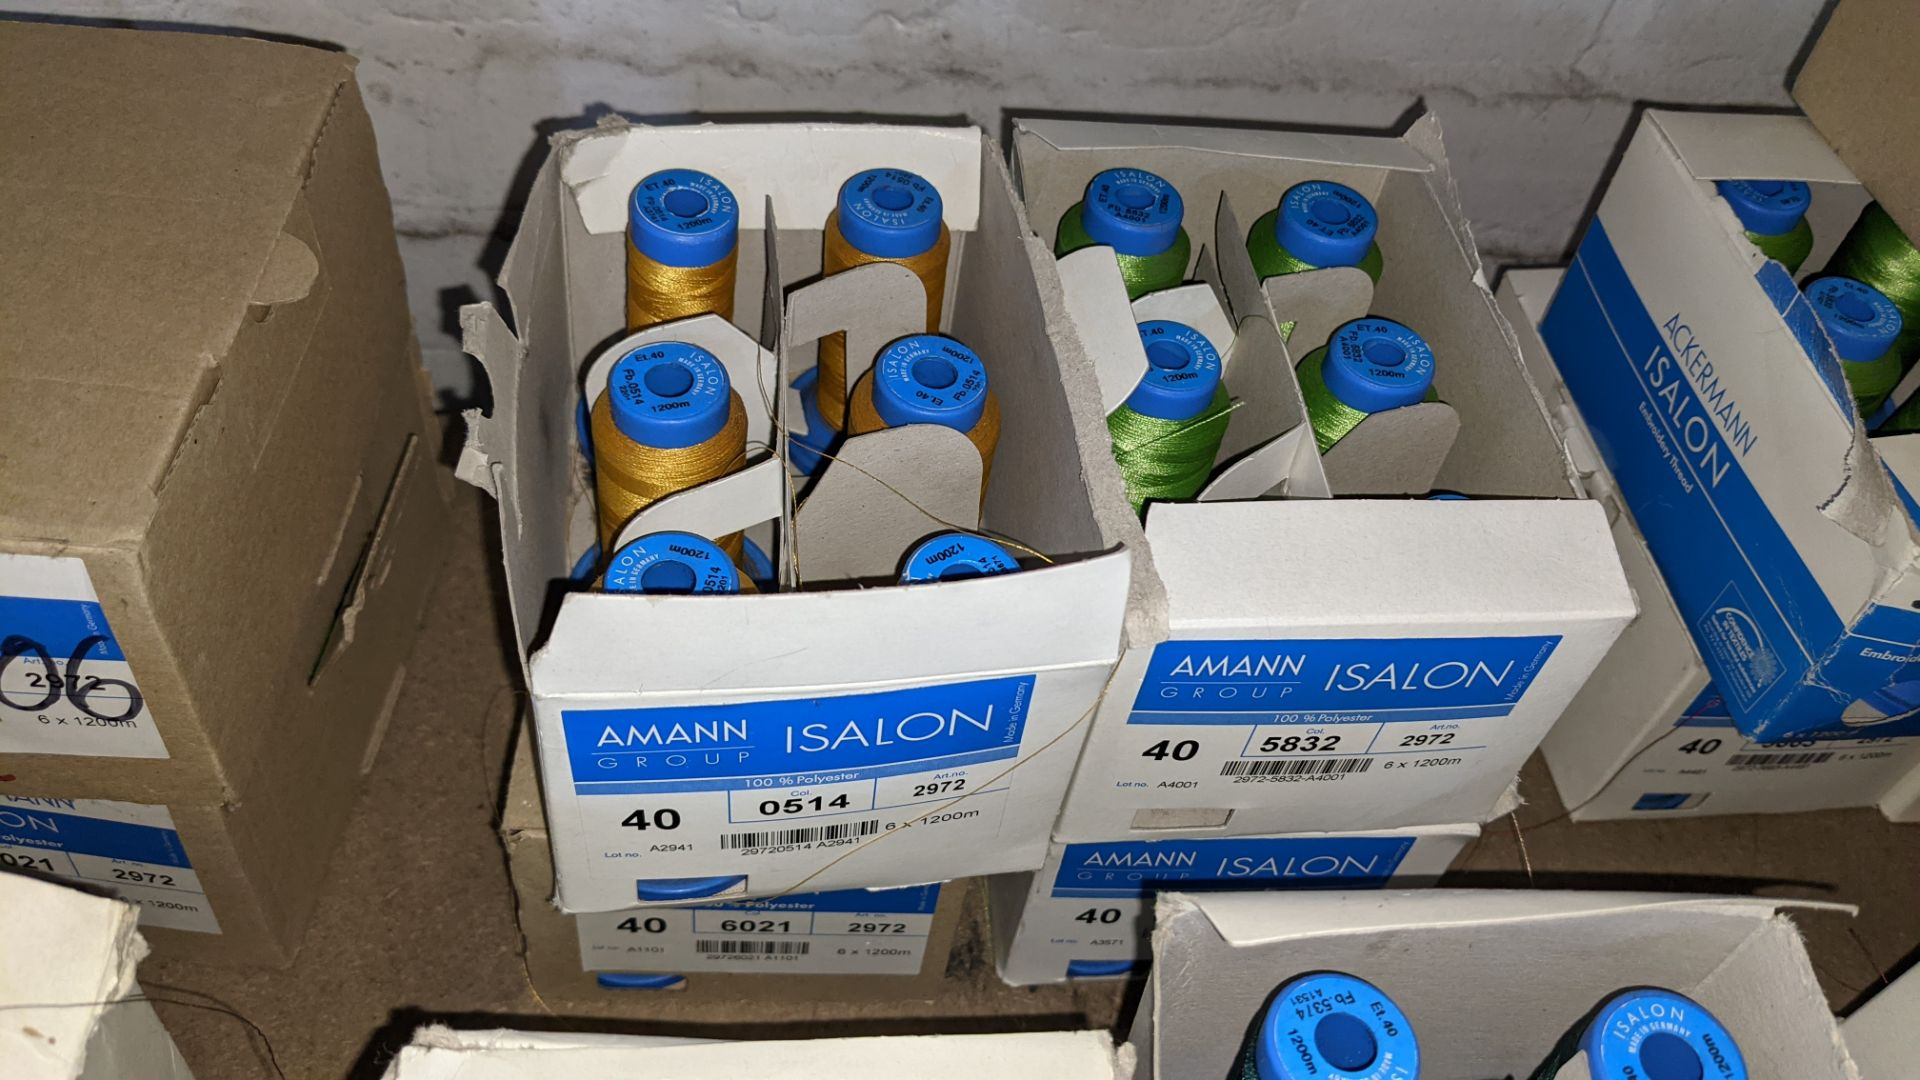 12 boxes of Amann Group ISALON embroidery thread - Image 5 of 6